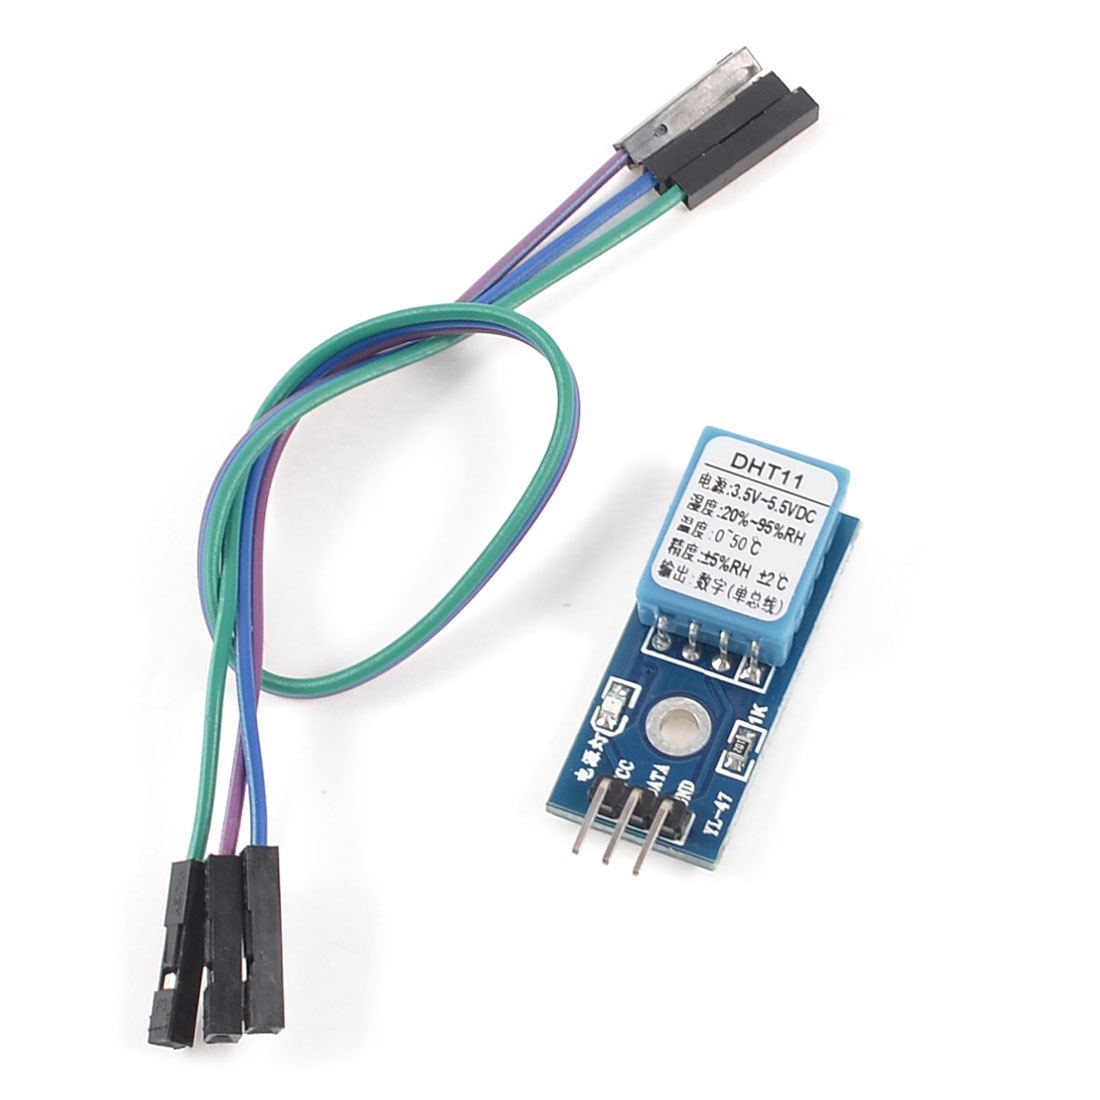 DHT11 Digital Temperature and Humidity Sensor Module Probe